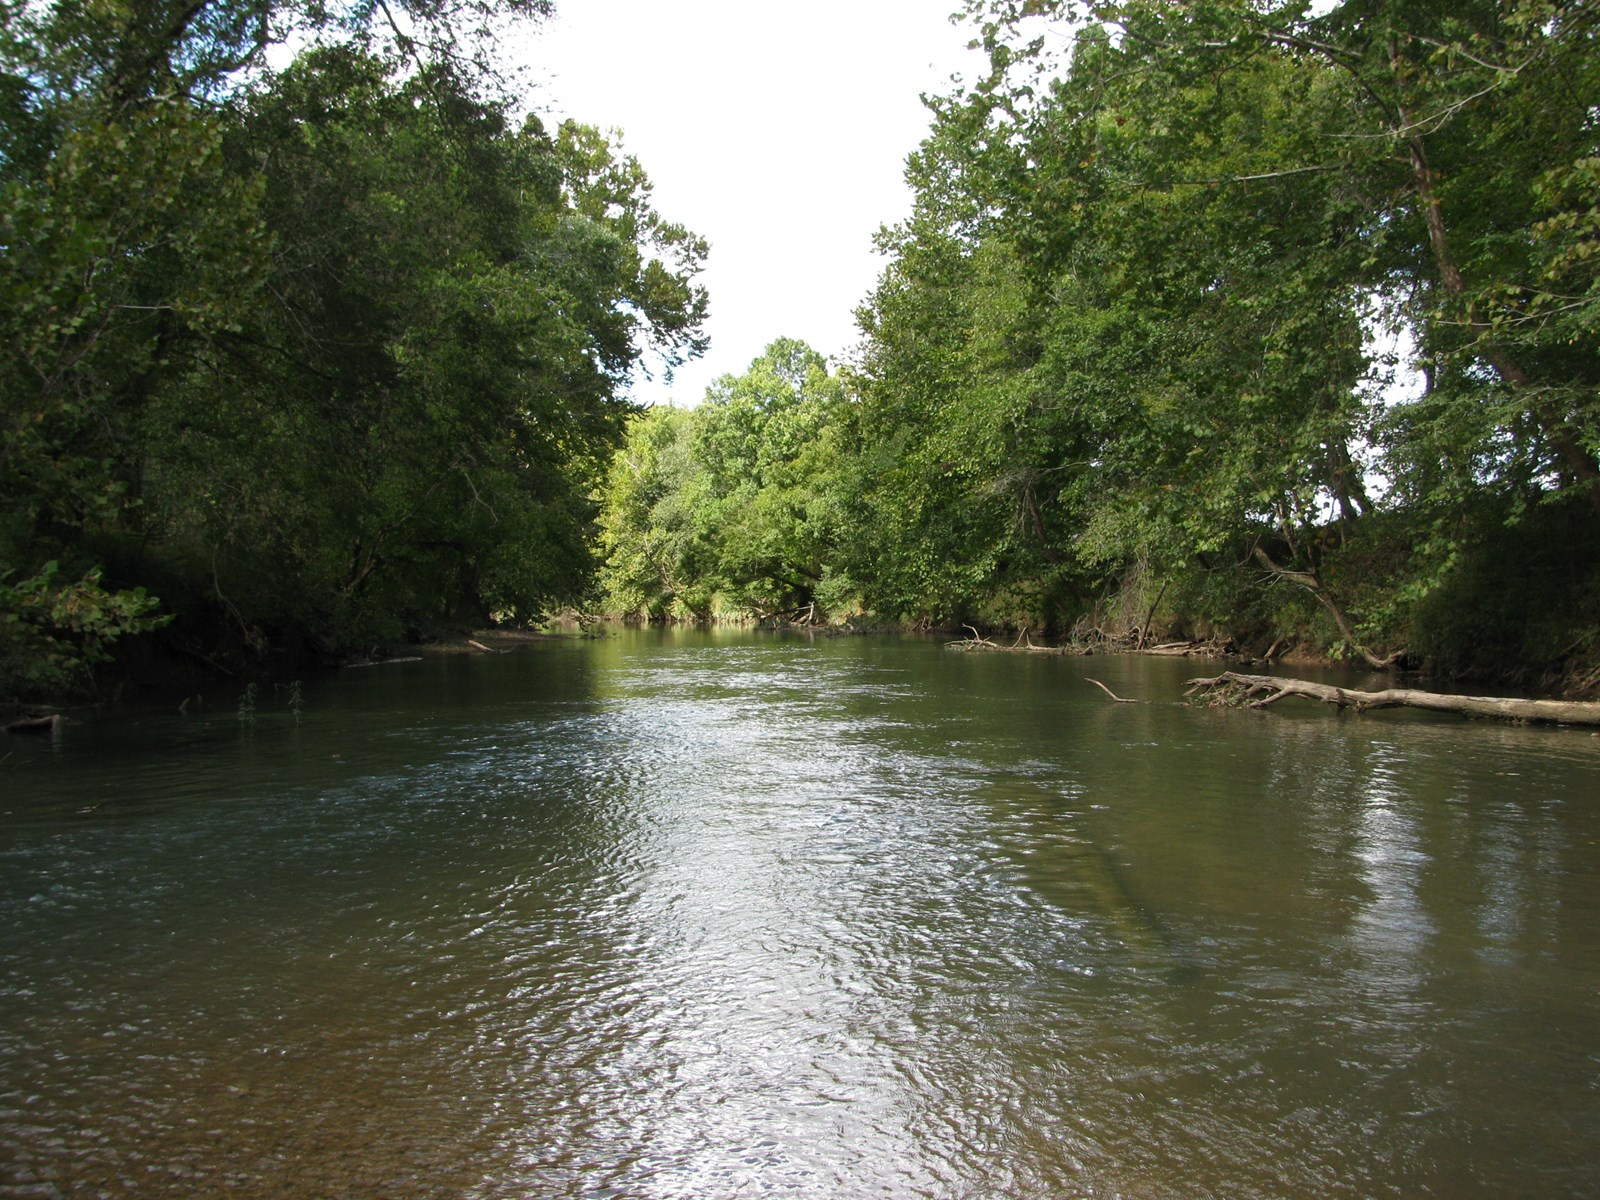 WATERFRONT LOT FOR SALE, LAND ON A CREEK, FISHING